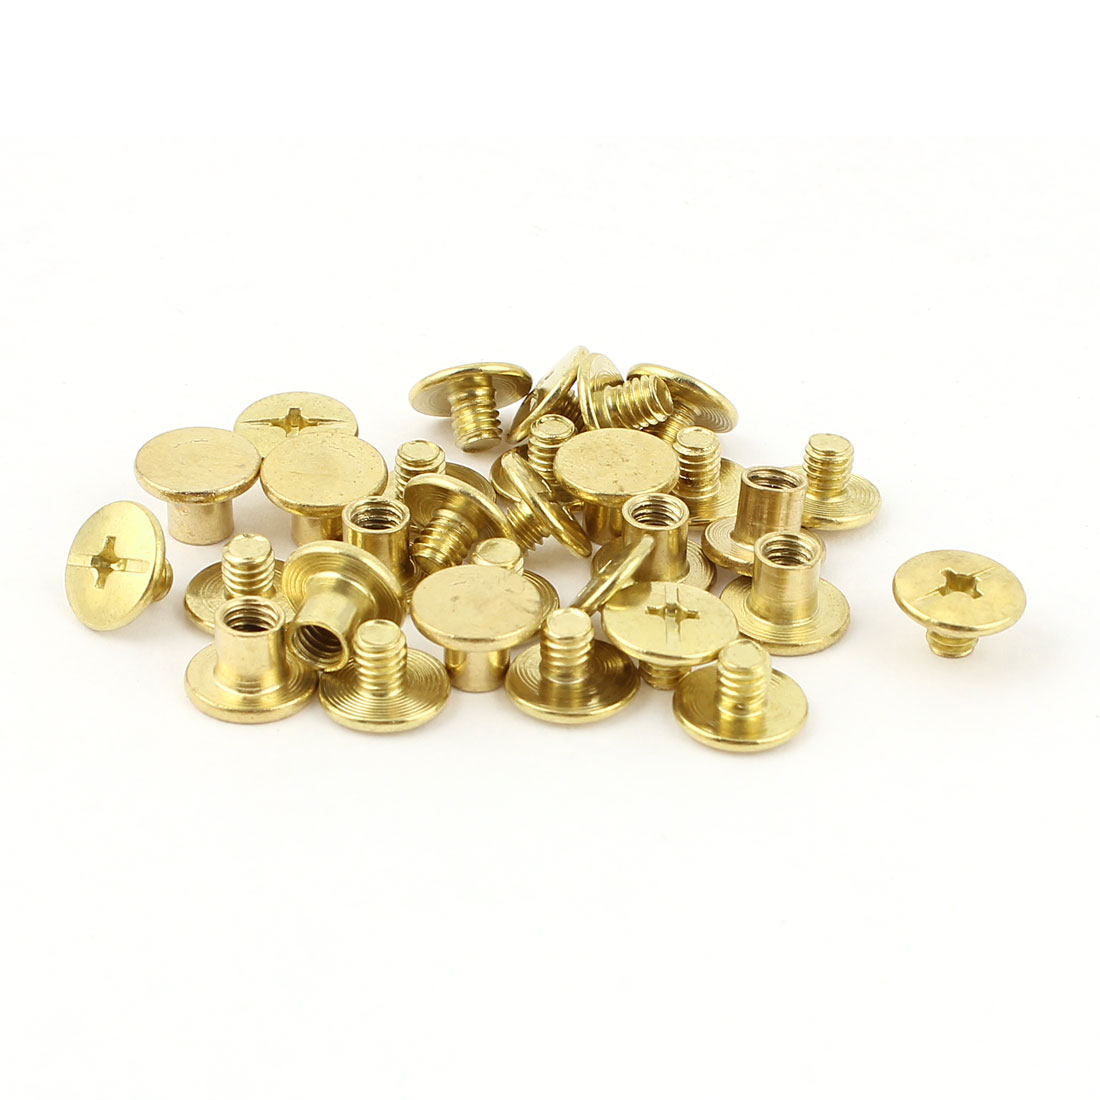 10pcs 5mmx6mm Brass Plated Binding Chicago Screw Post for Belt Scrapbook